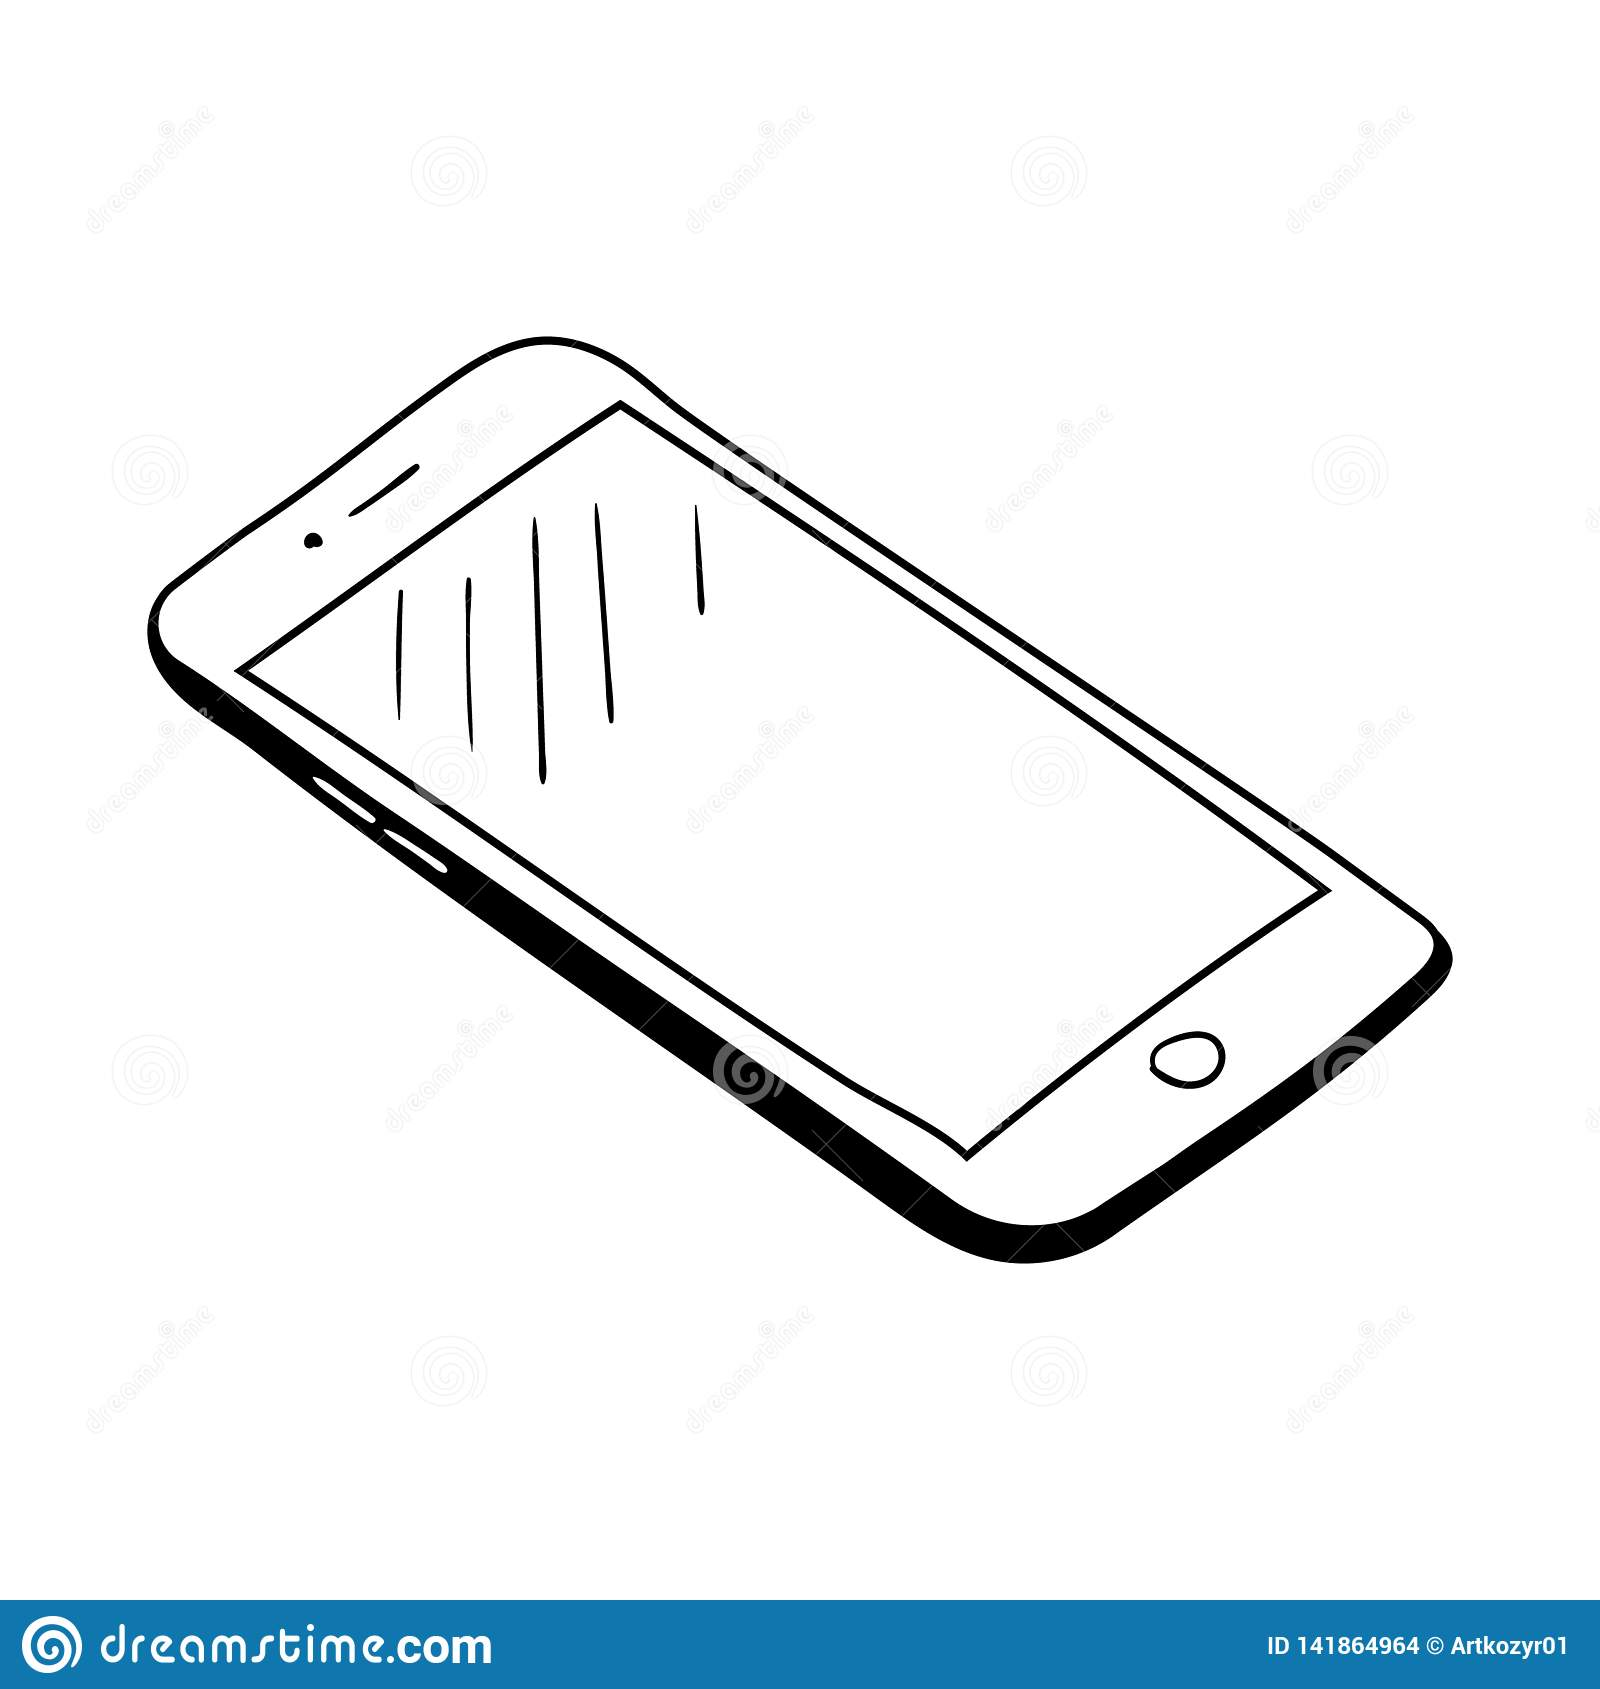 Hand Drawn Sketch Of Mobile Phone Stock Vector - Illustration of